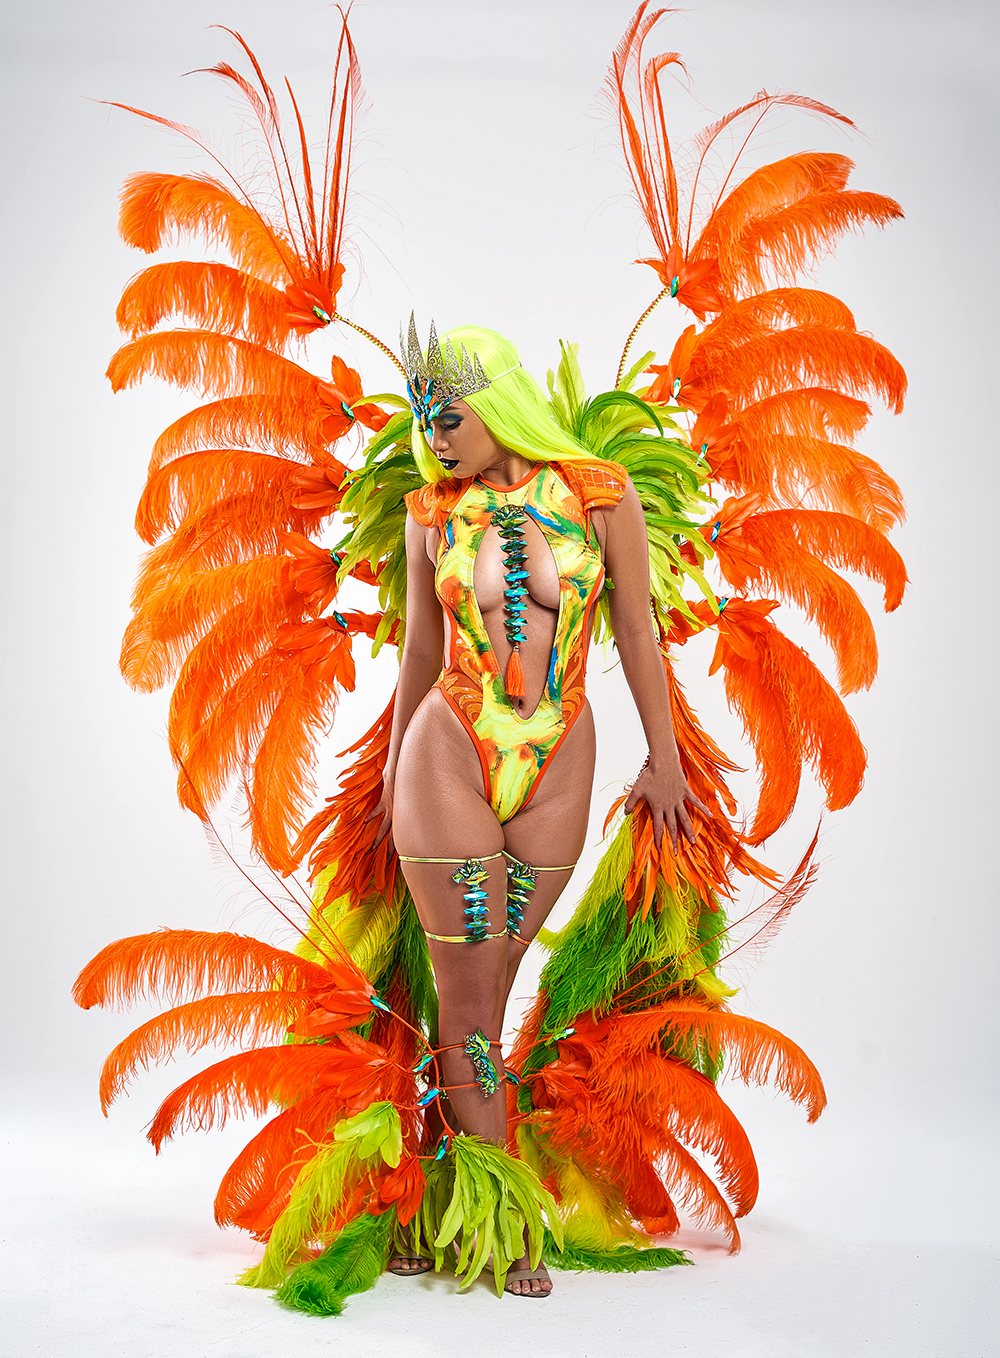 XODUS POISON IVY - MONOKINI W LARGE BACKPACK & FEATHERED LEGS